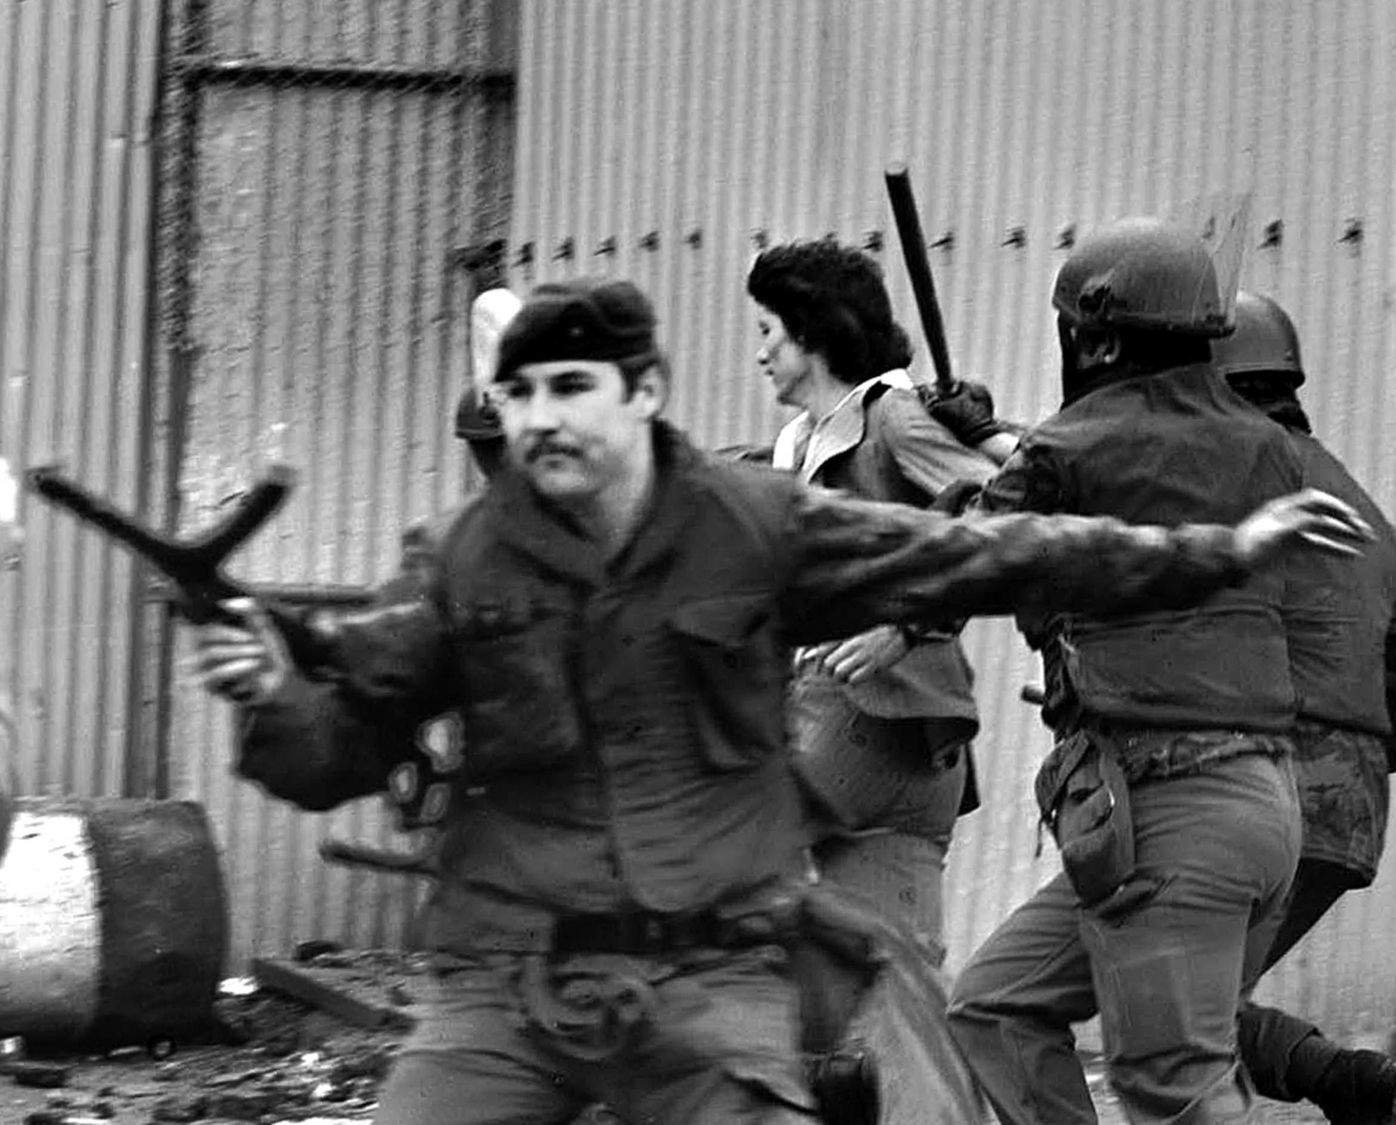 British army on patrol in Belfast in the 1970s